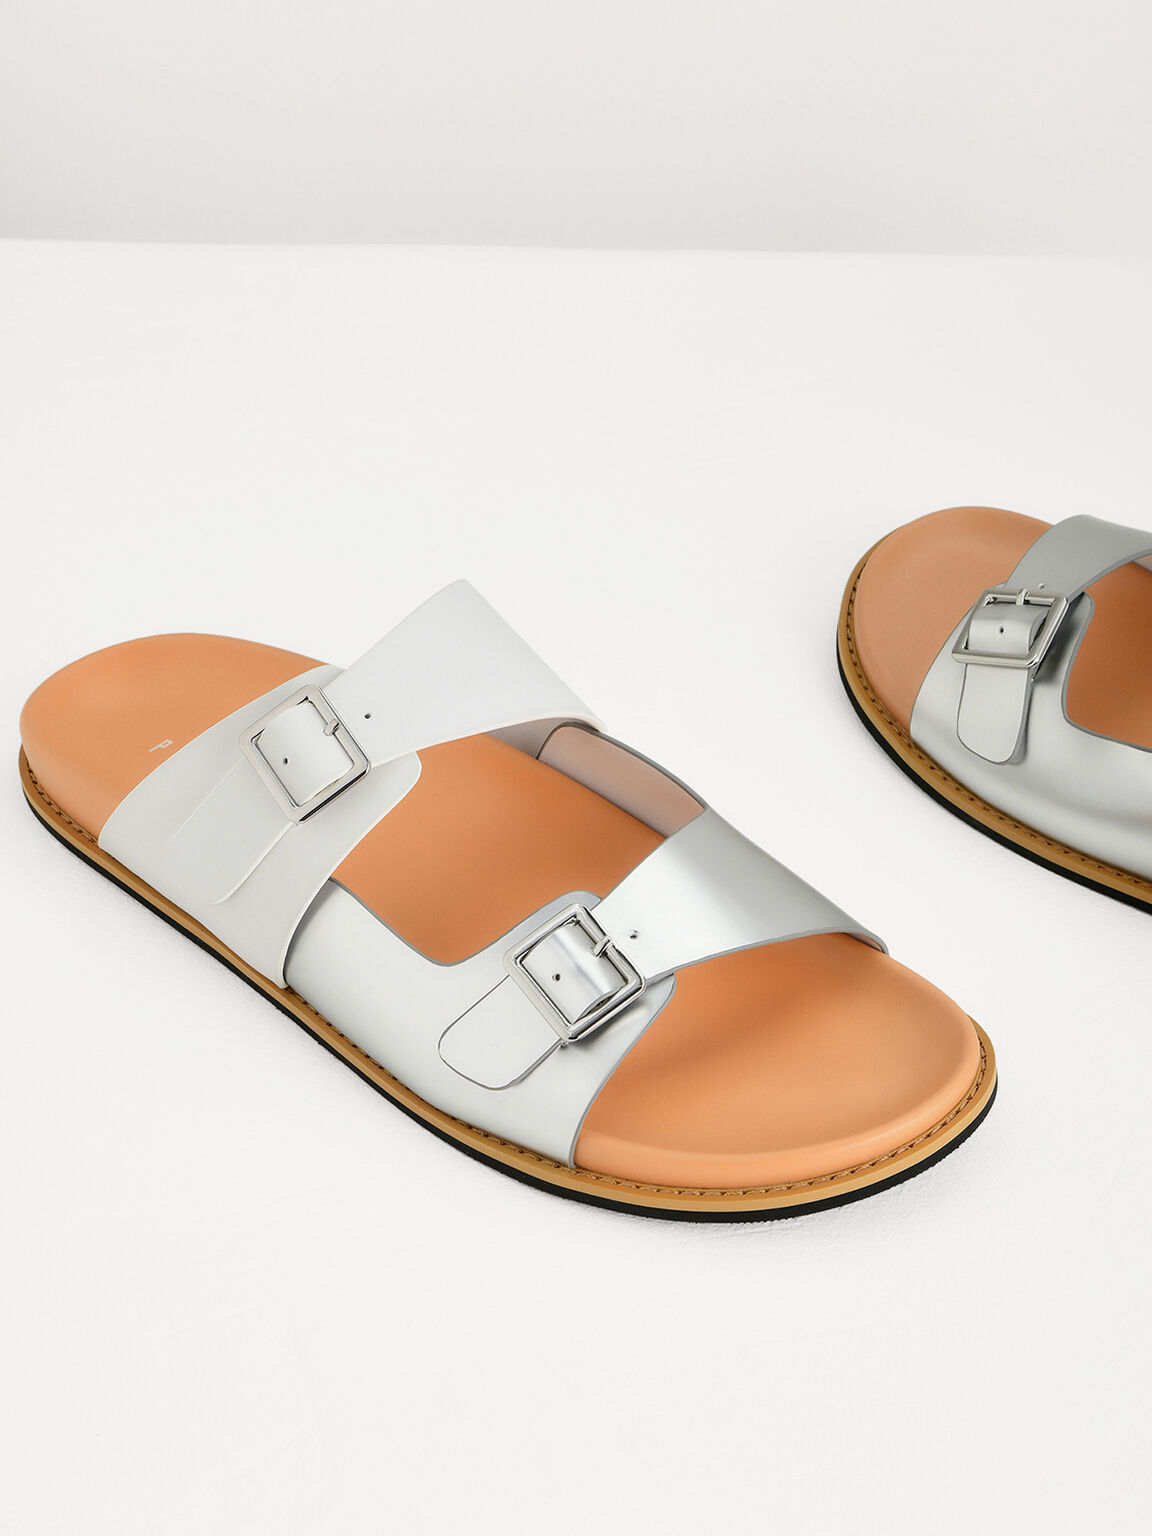 Two-Toned Sandals, Silver, hi-res